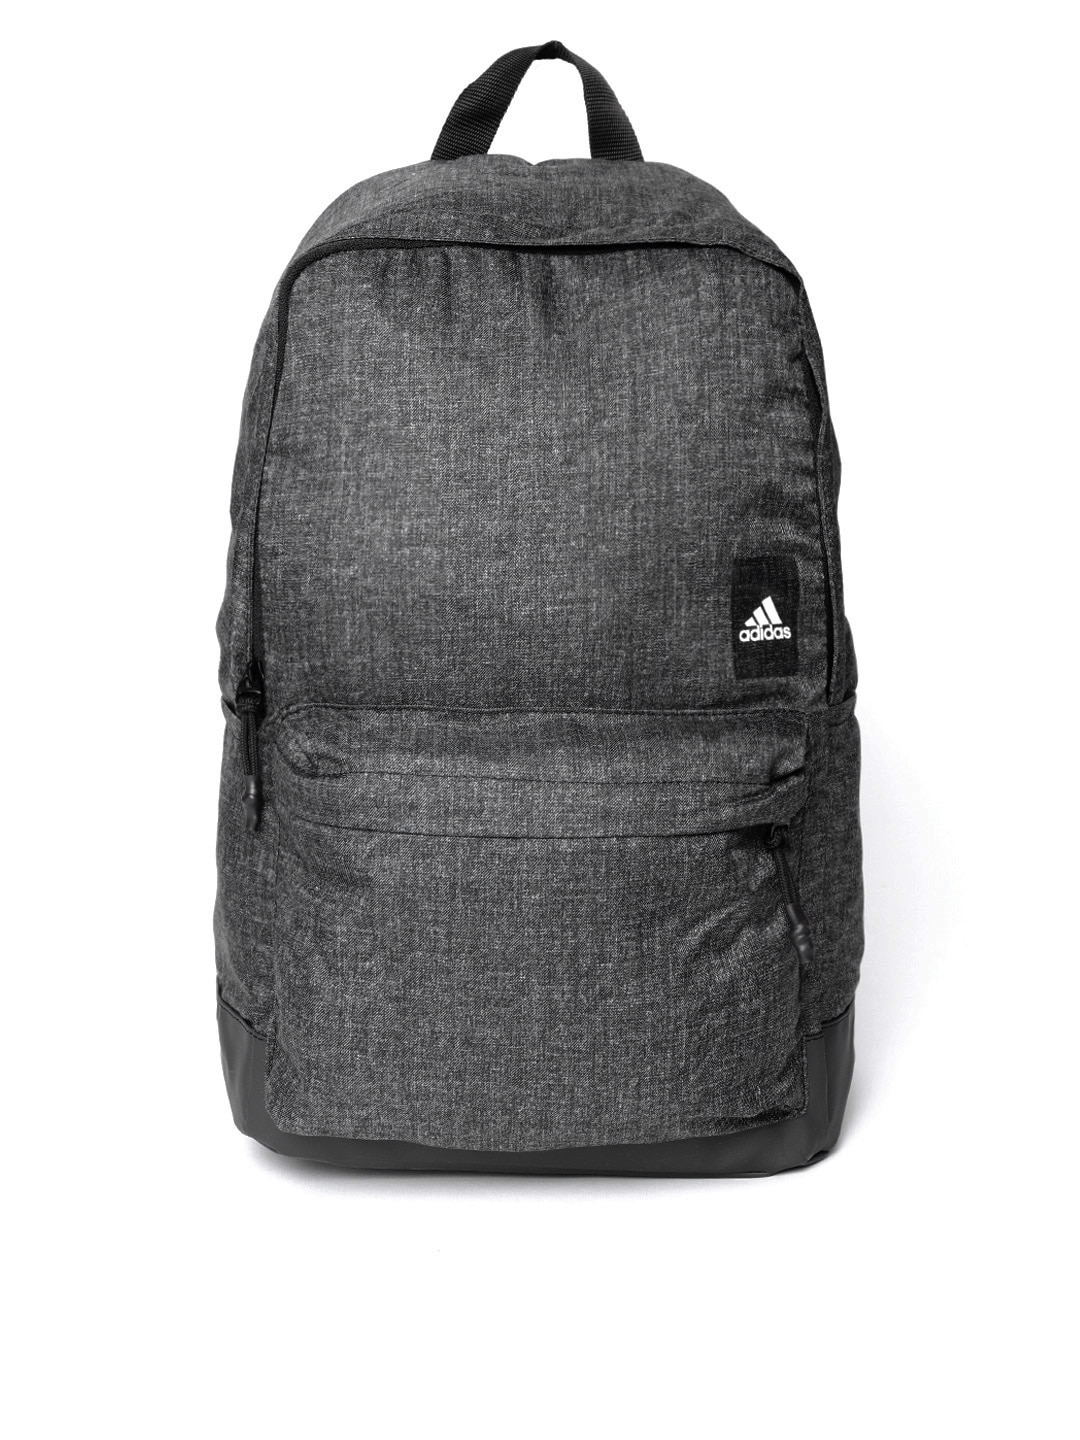 adidas Backpacks - Buy adidas Backpacks Online in India  d9ccf2d2de40d